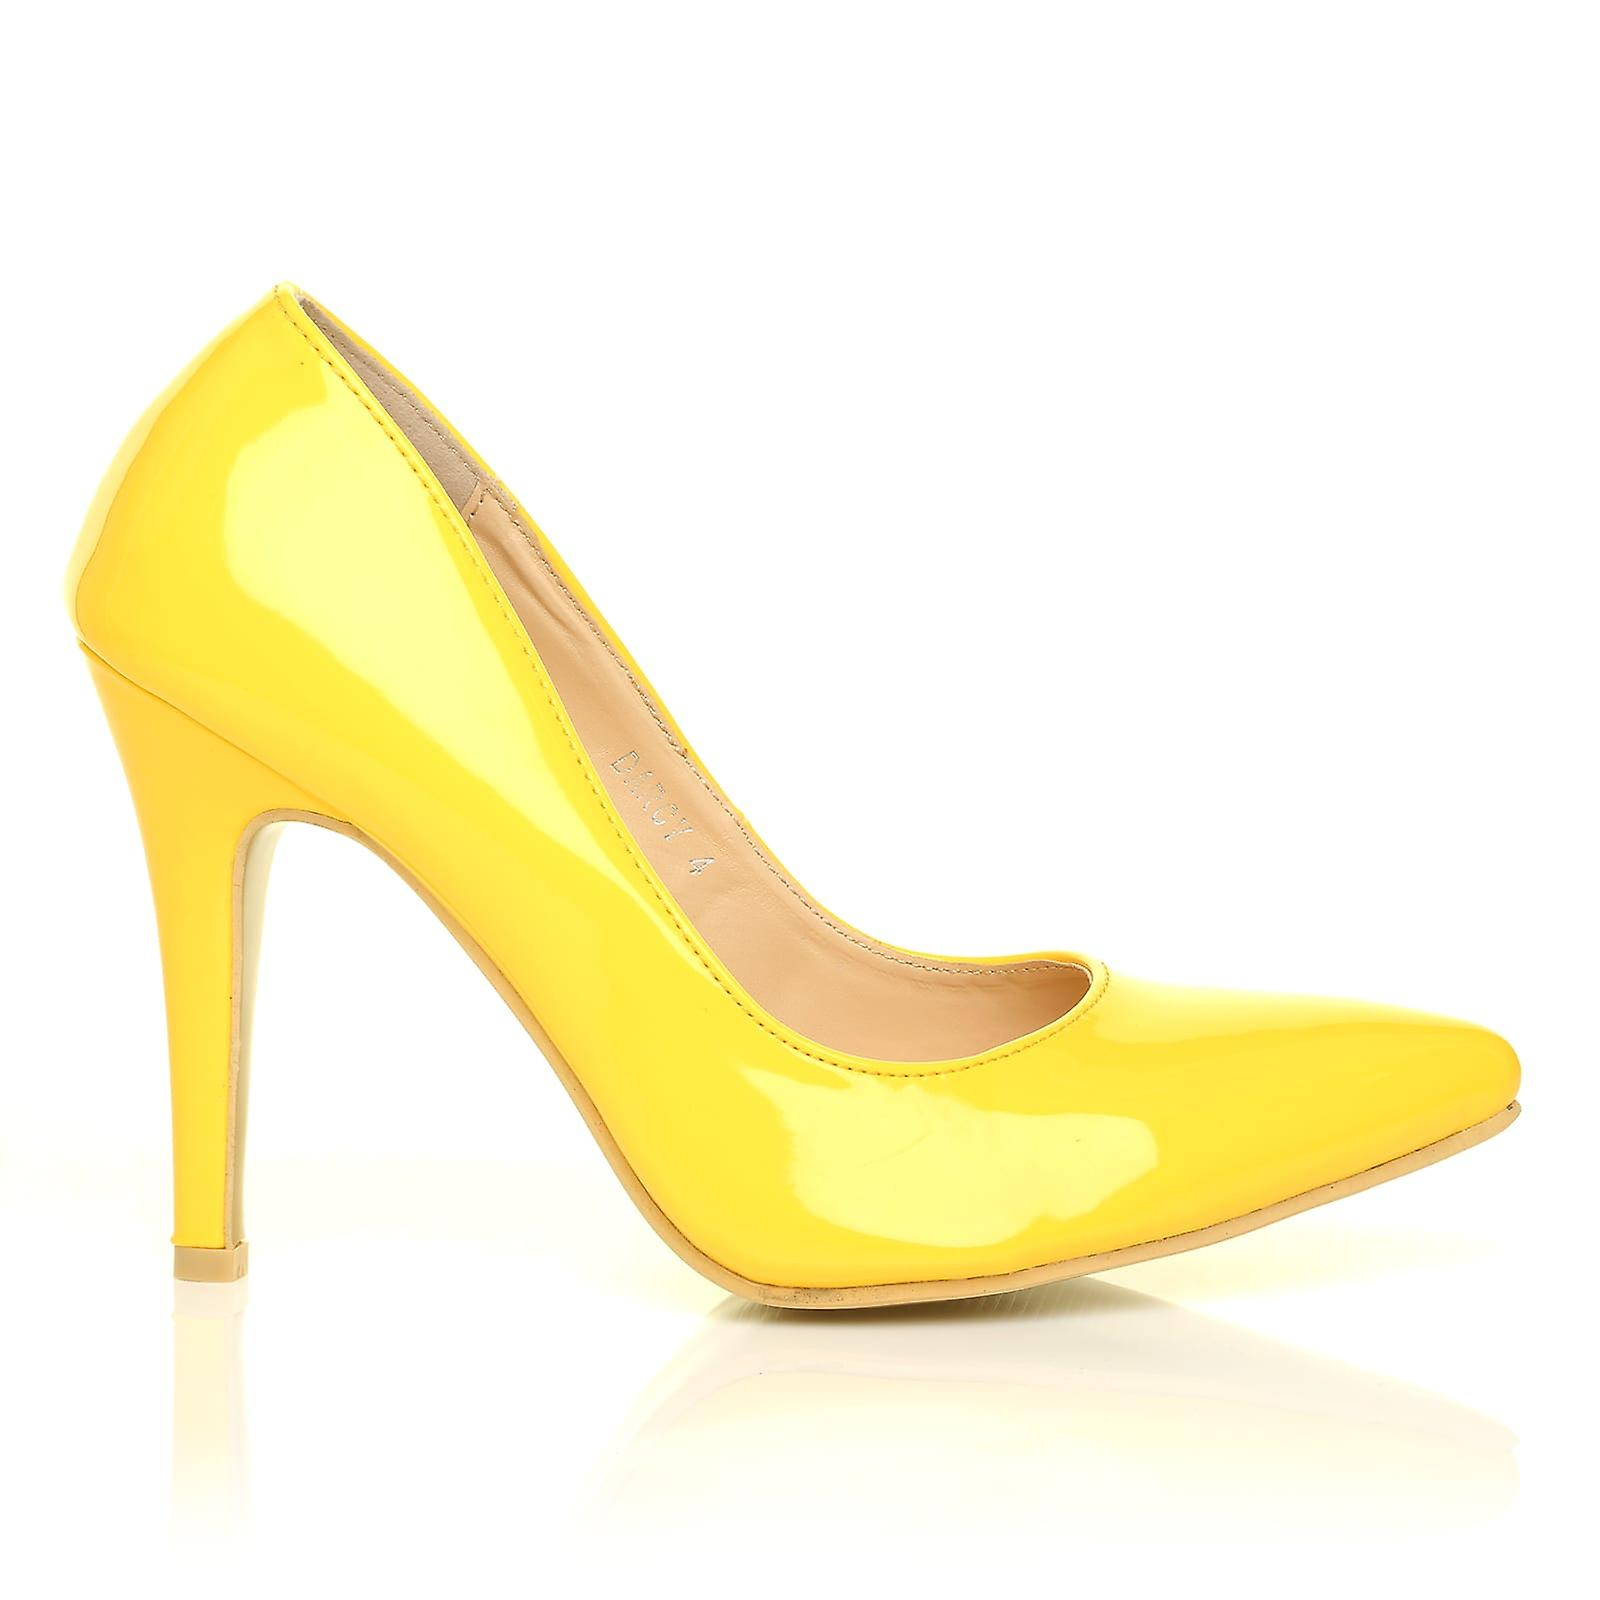 DARCY Yellow High Patent PU Leather Stilleto High Yellow Heel Pointed Court Shoes f57fe9